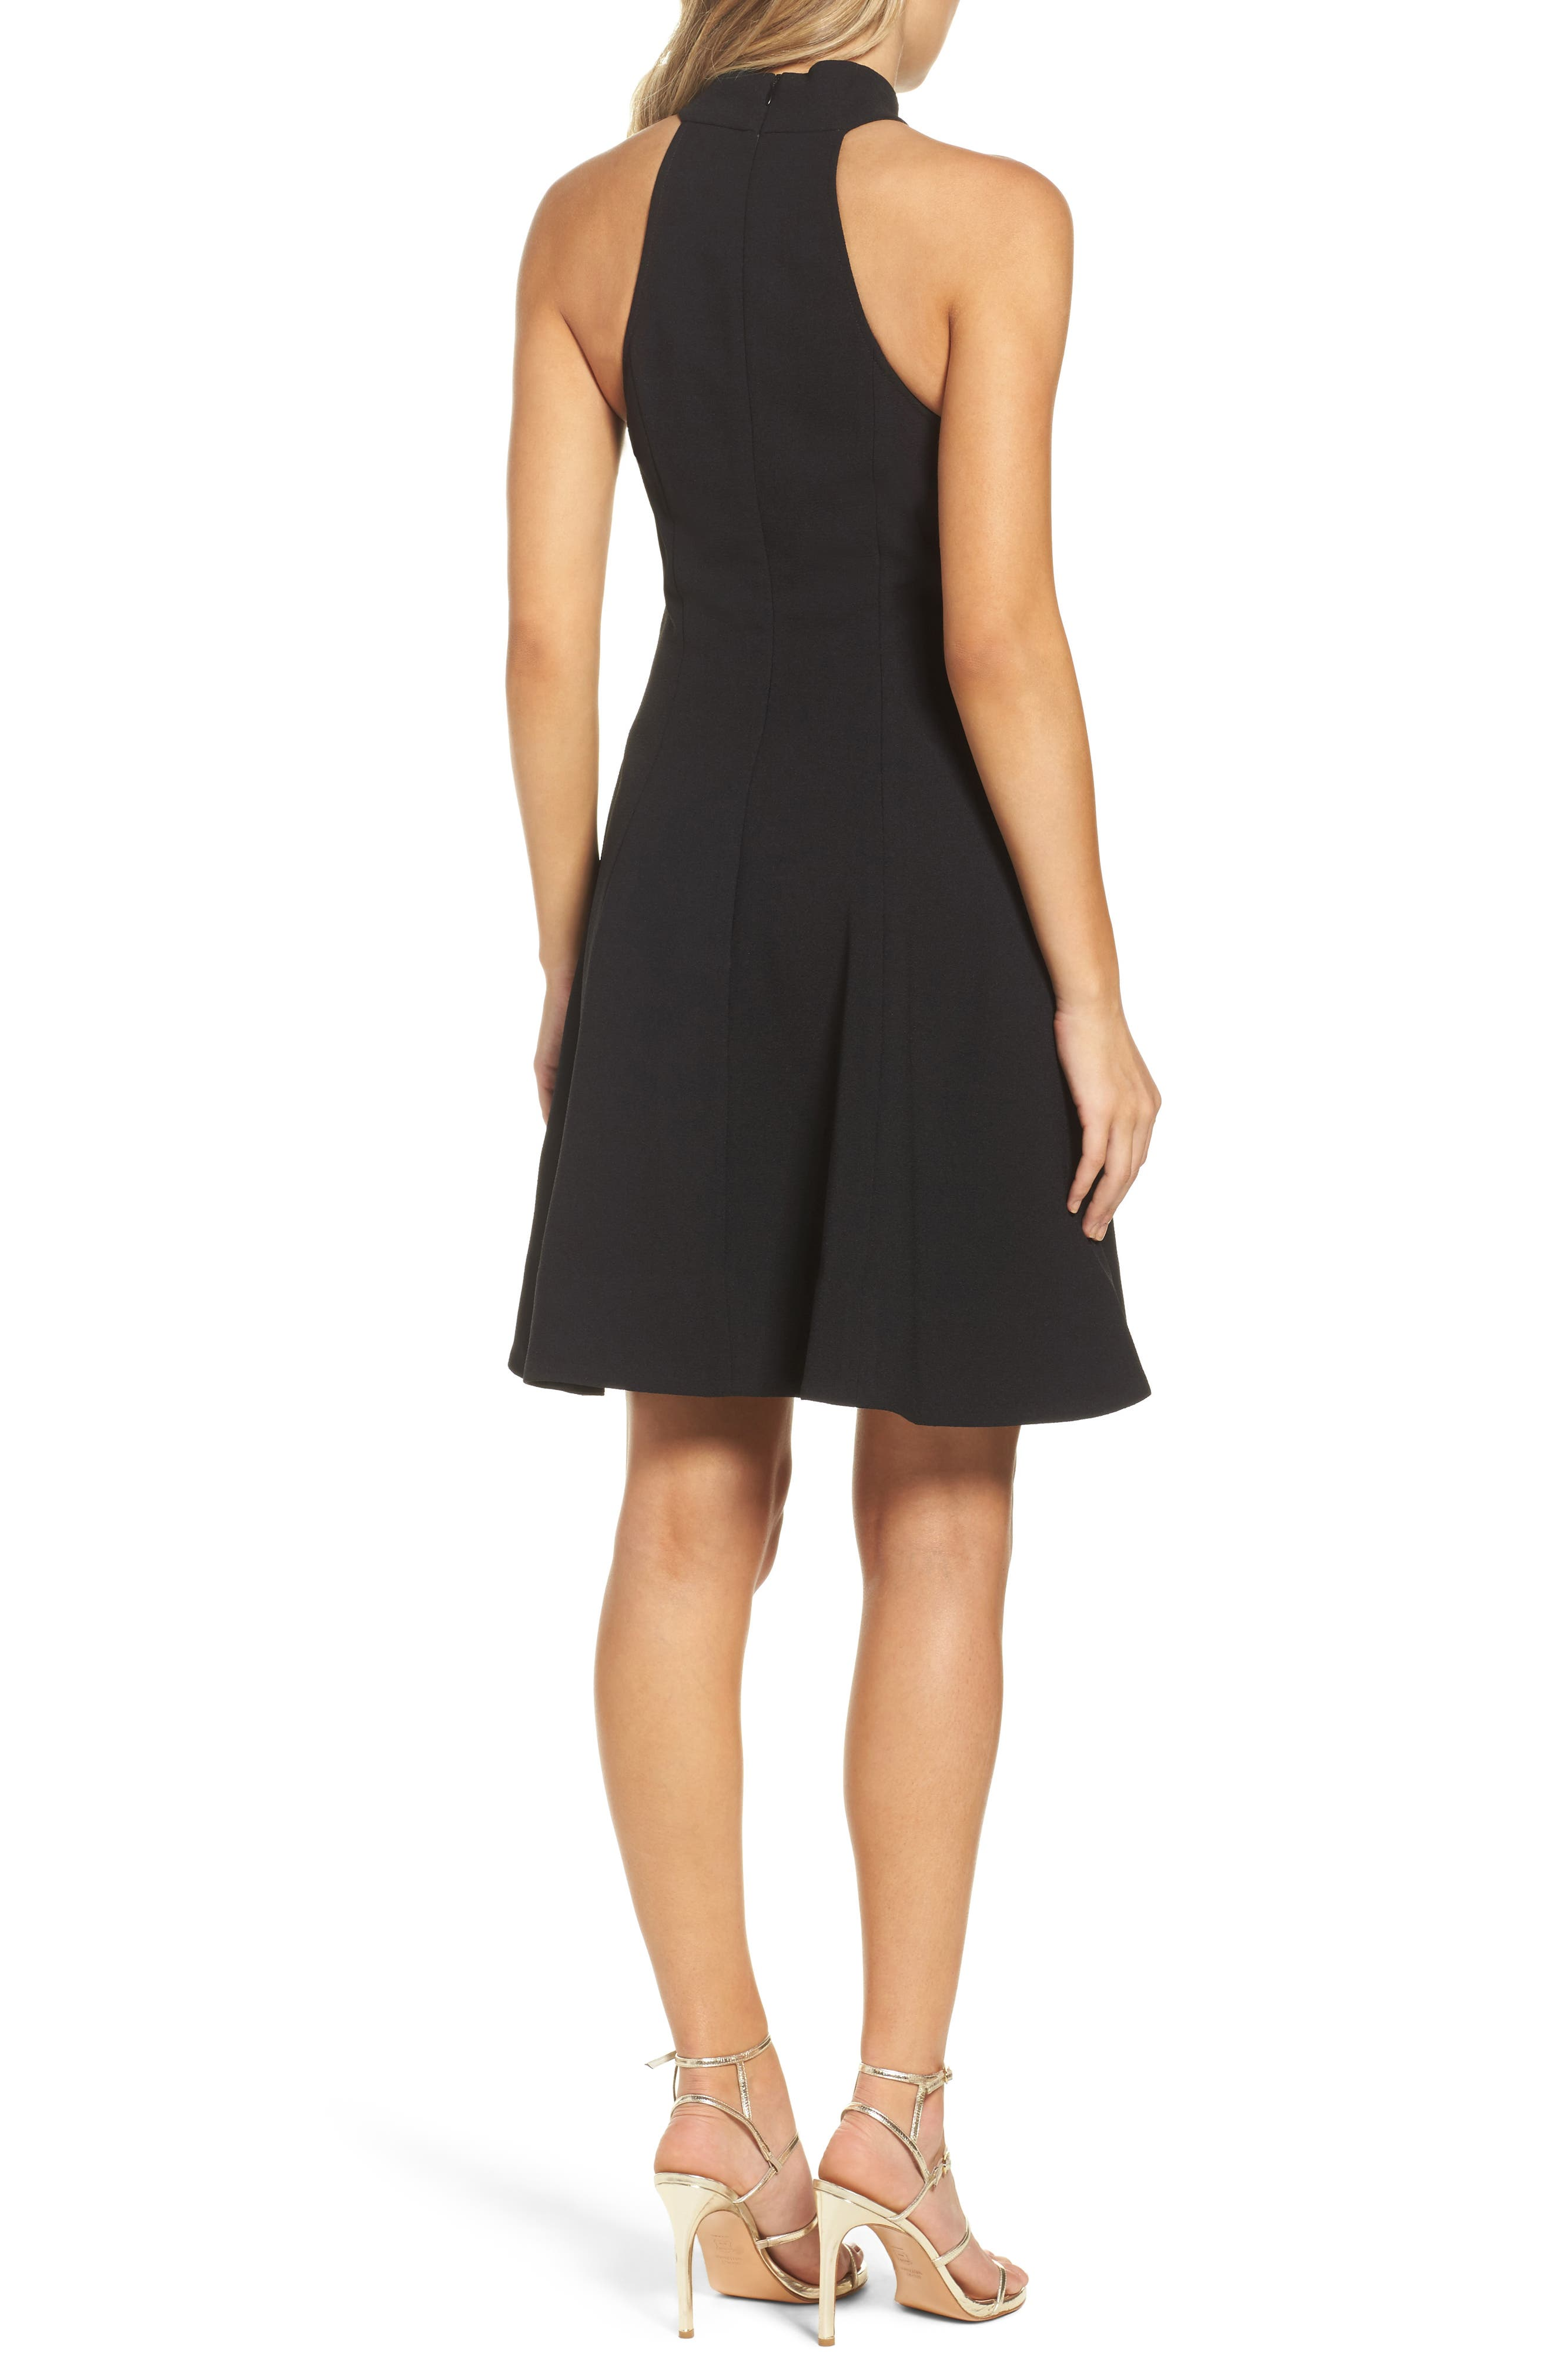 Fusion Halter Style Fit & Flare Dress,                             Alternate thumbnail 2, color,                             001